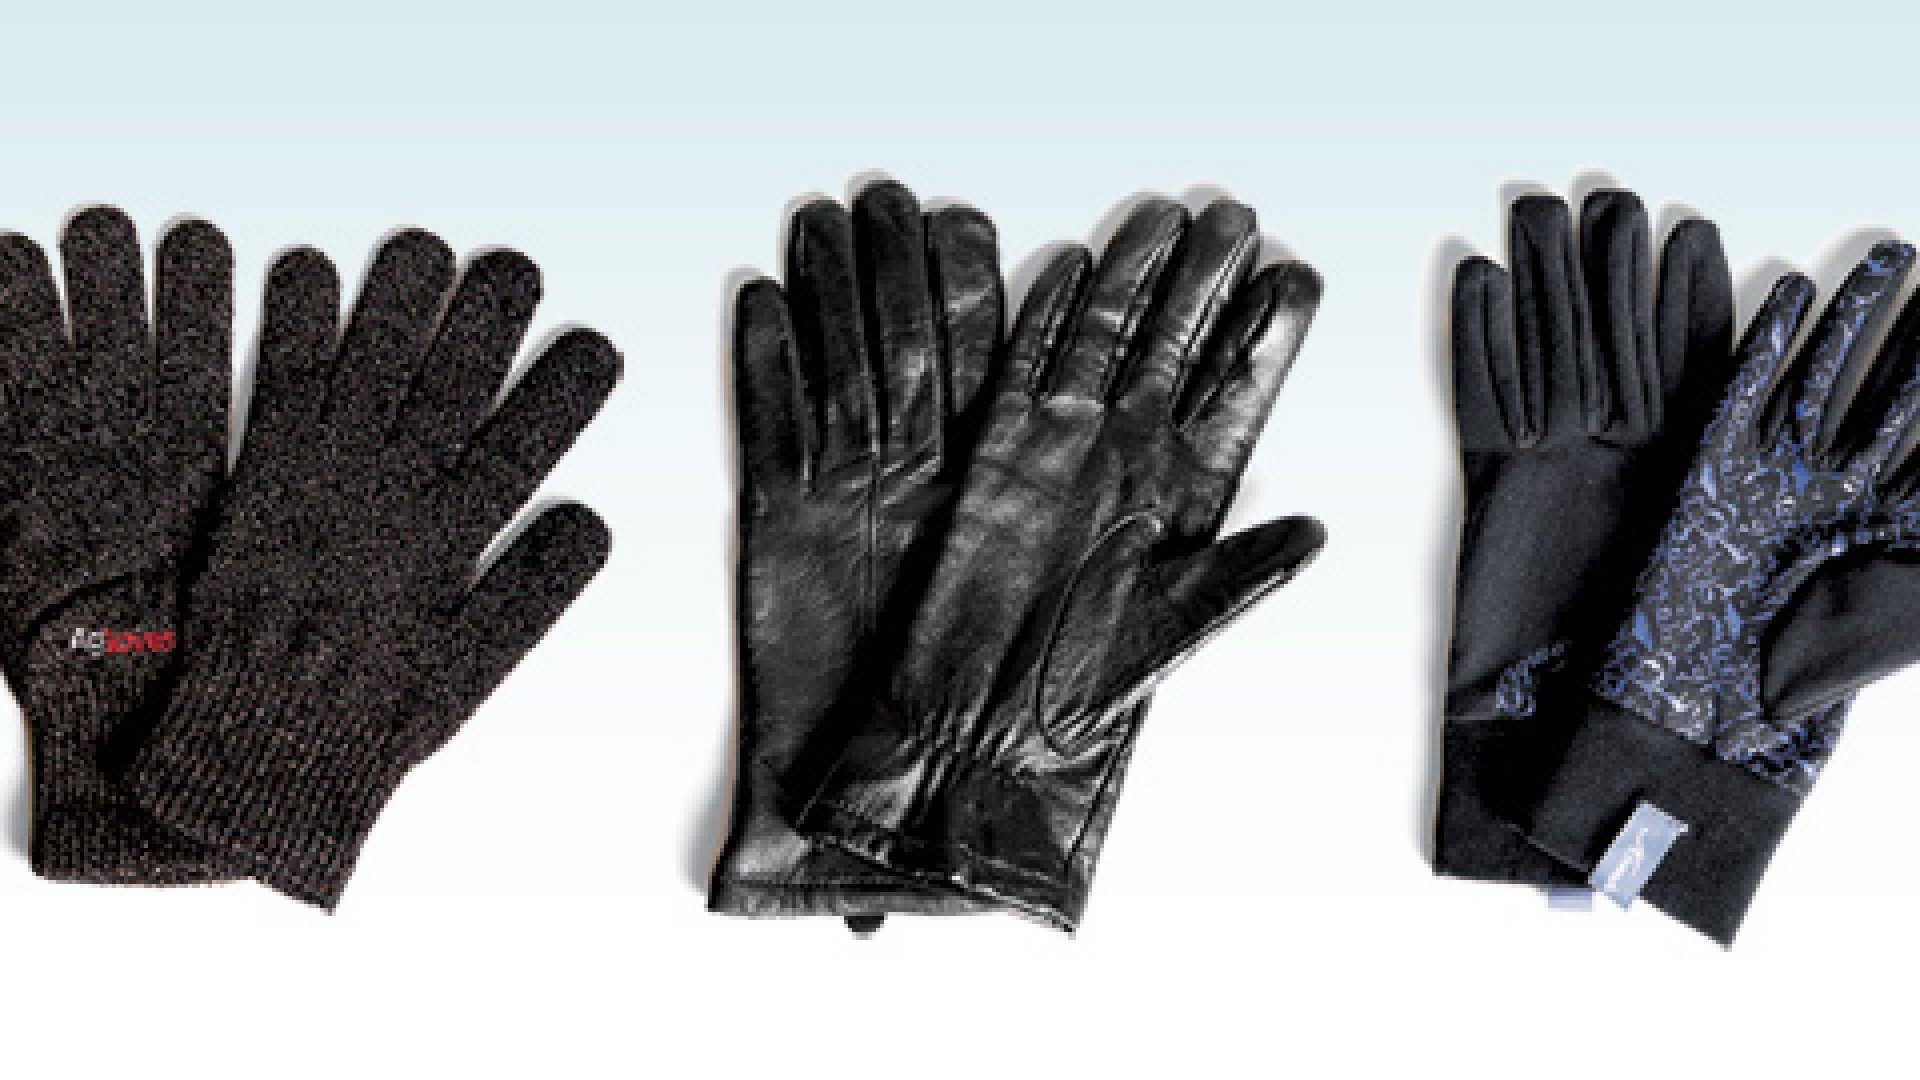 Review: Which Touch-friendly Gloves Are the Best?